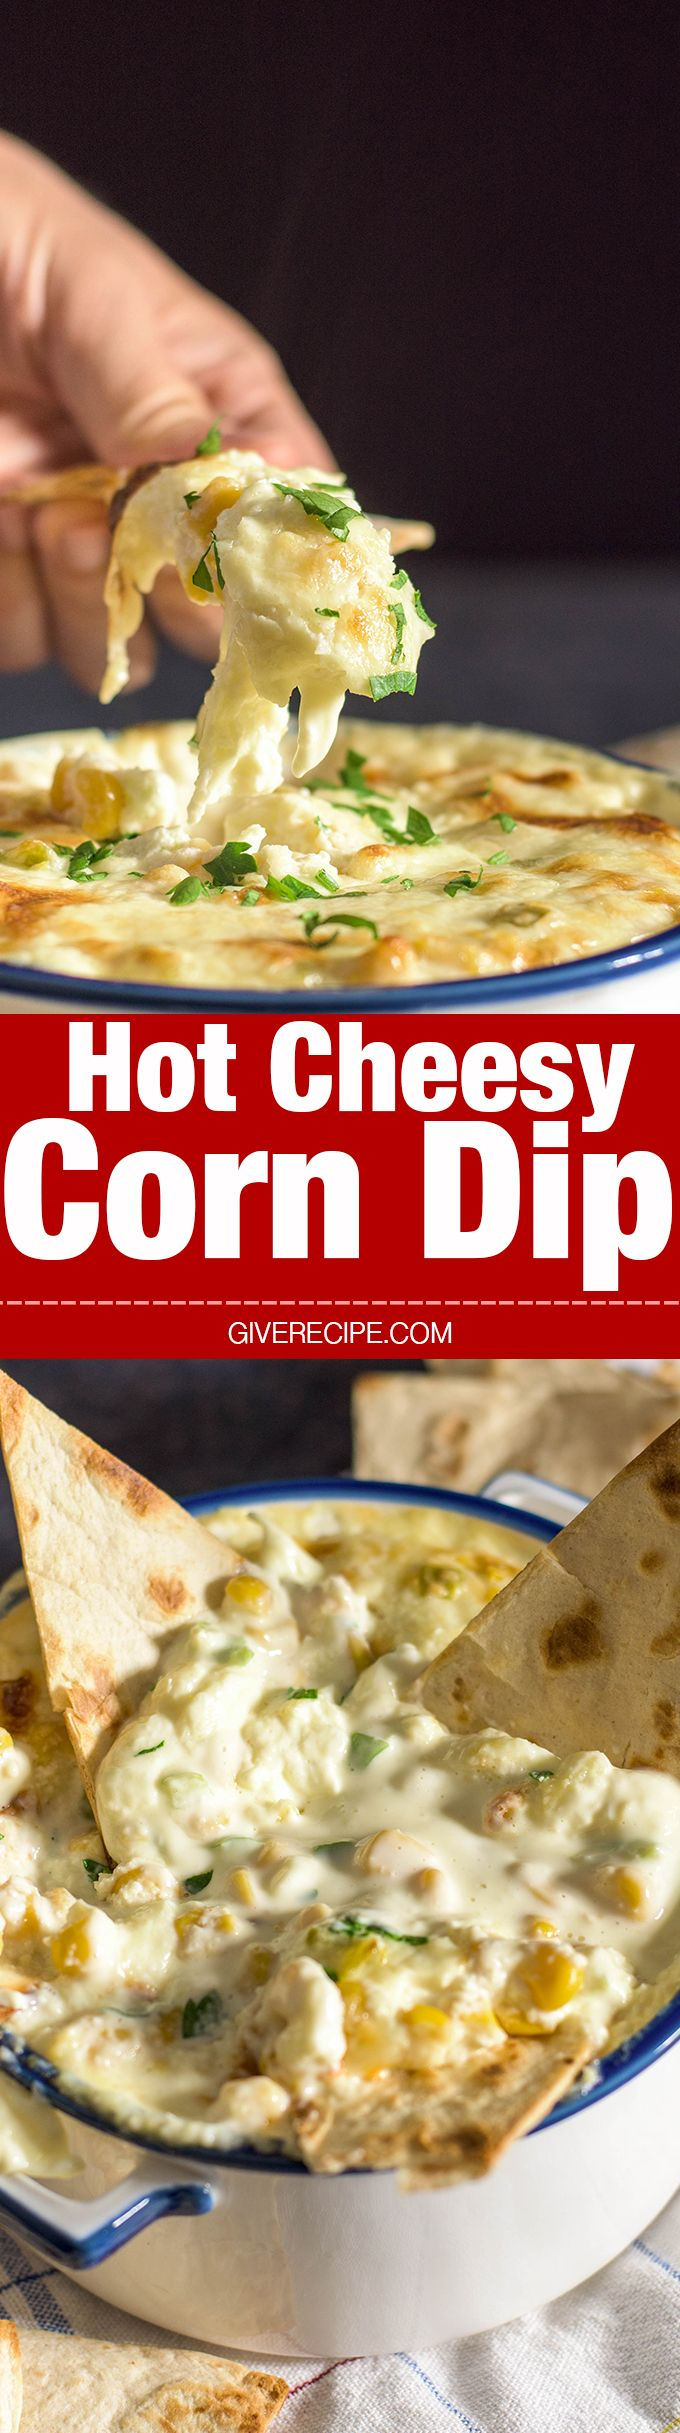 Hot Cheesy Corn Dip is super easy with just 5 ingredients. Prepared just in 5 min. So GOOD and creamy that everyone wants to eat the whole thing! - giverecipe.com